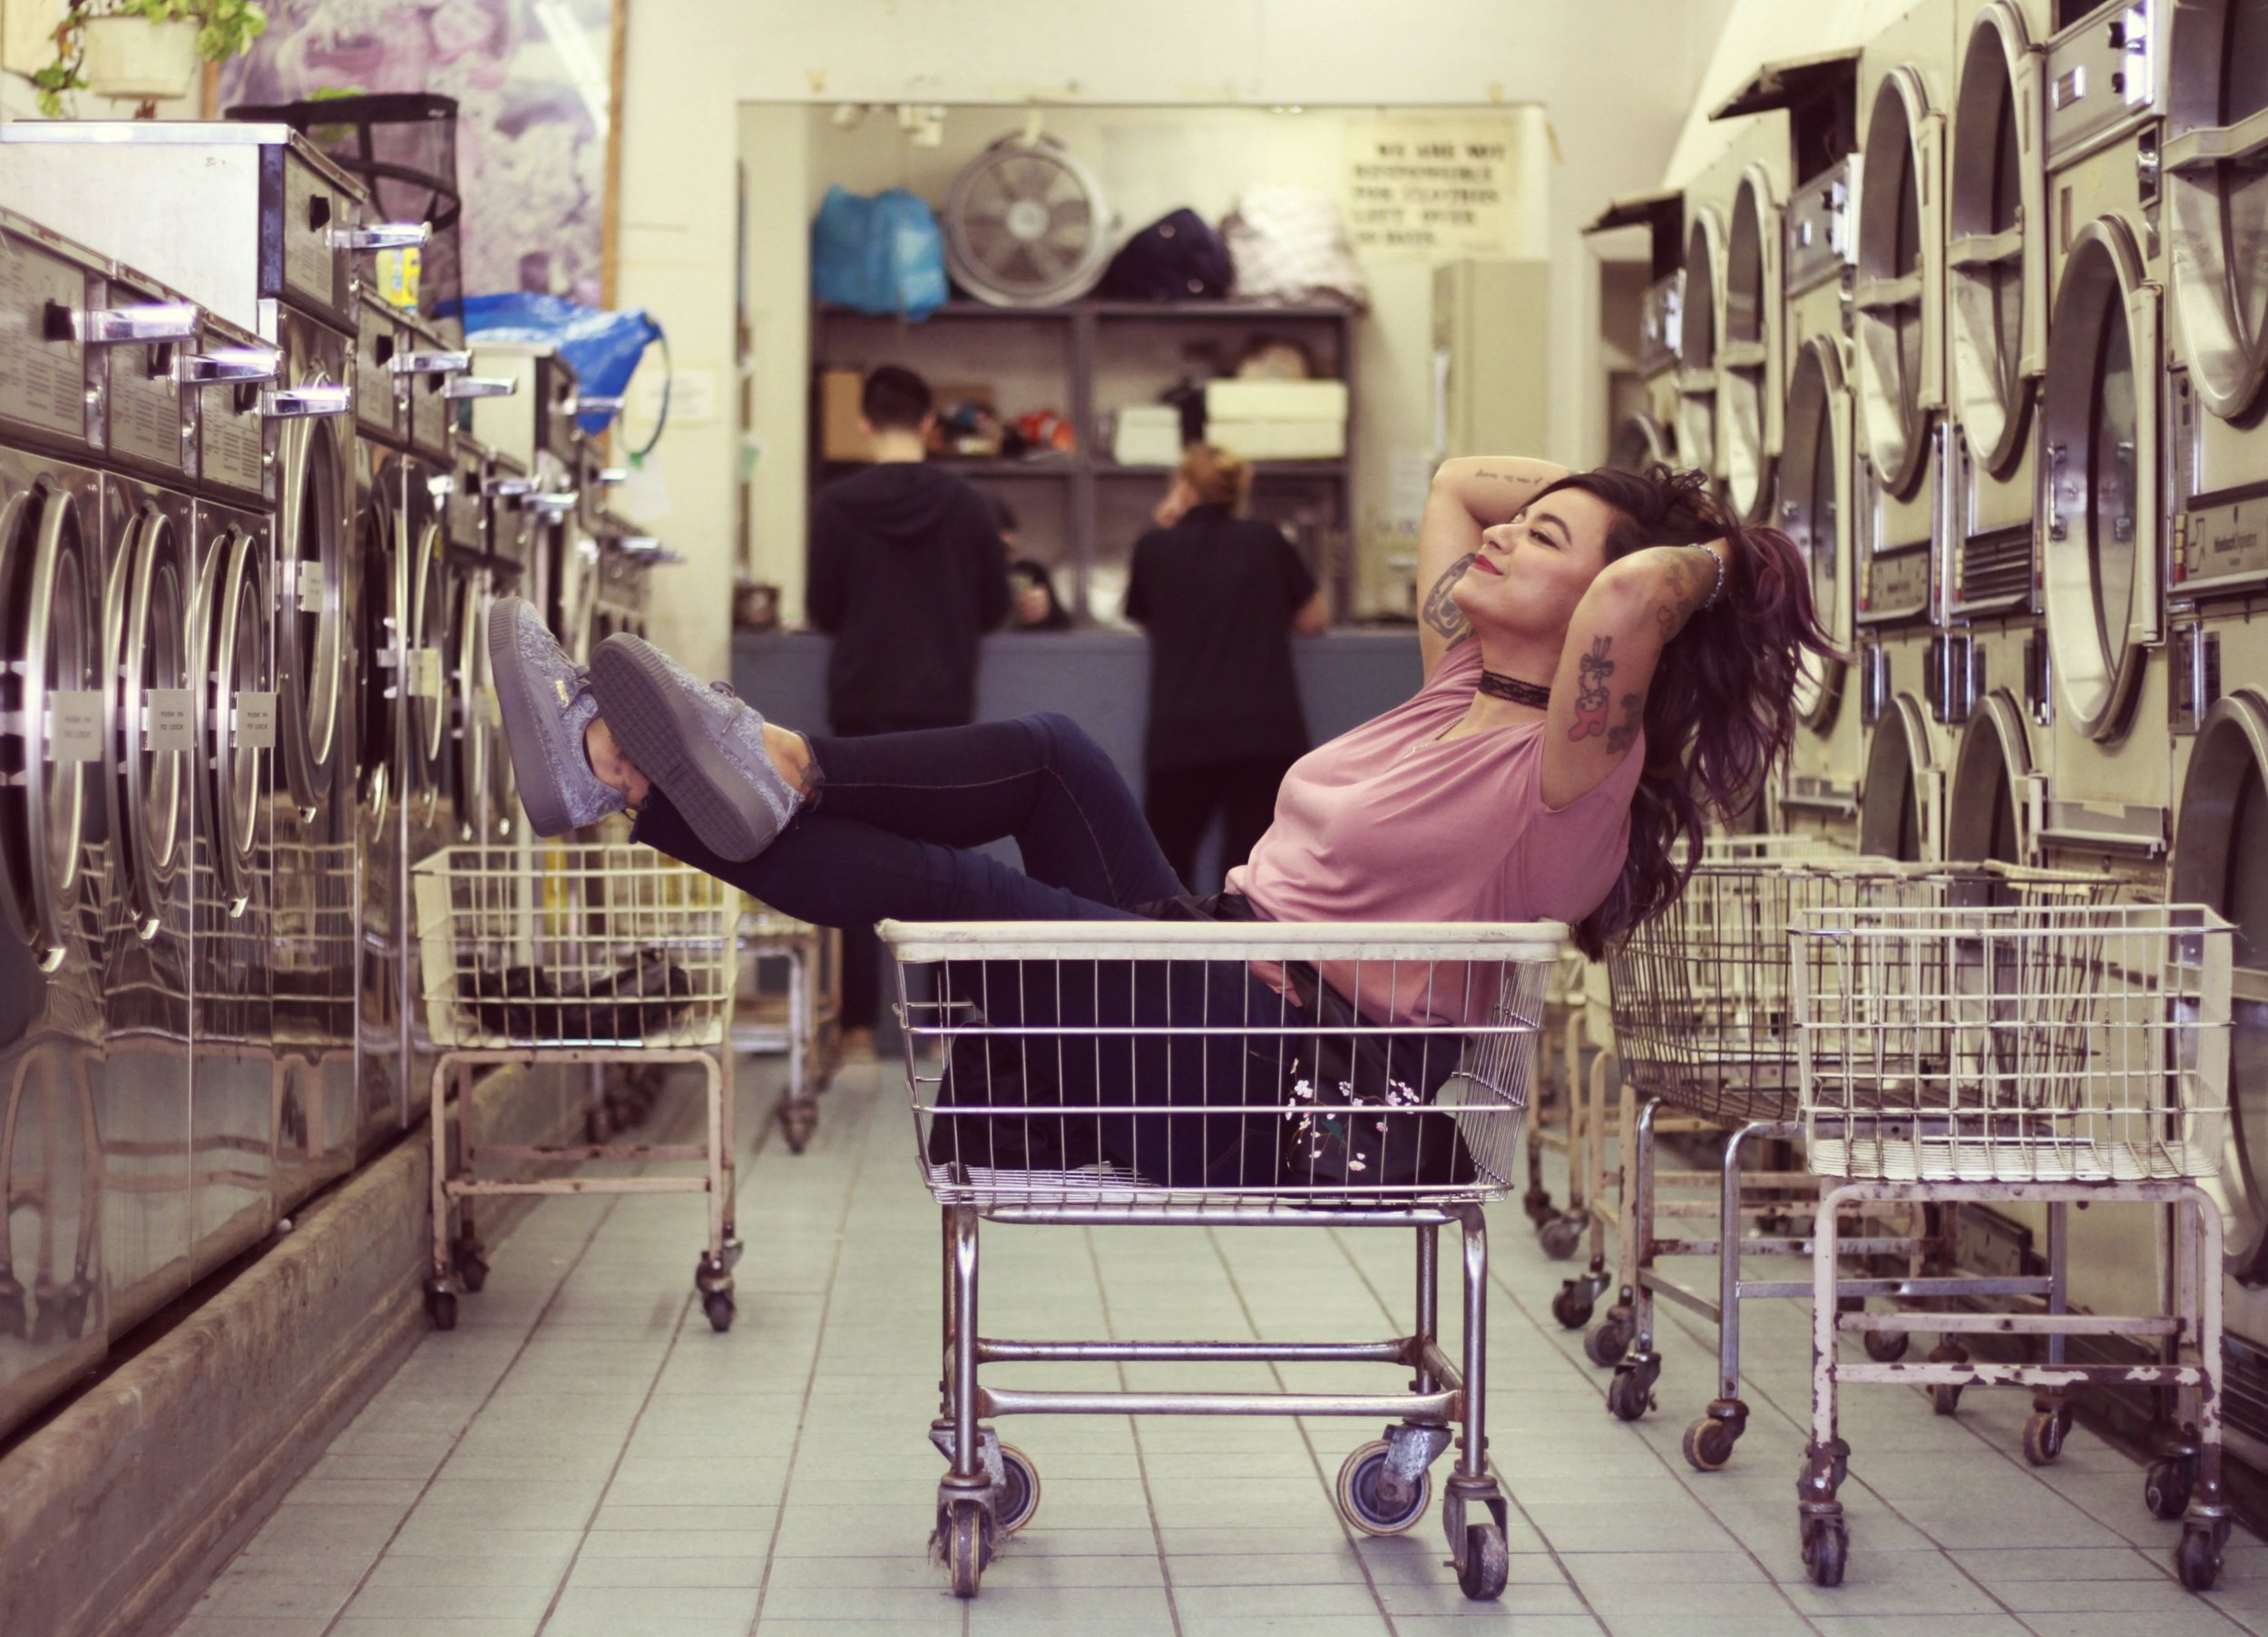 Laundry Day By @AngieLMV | Edited by Me